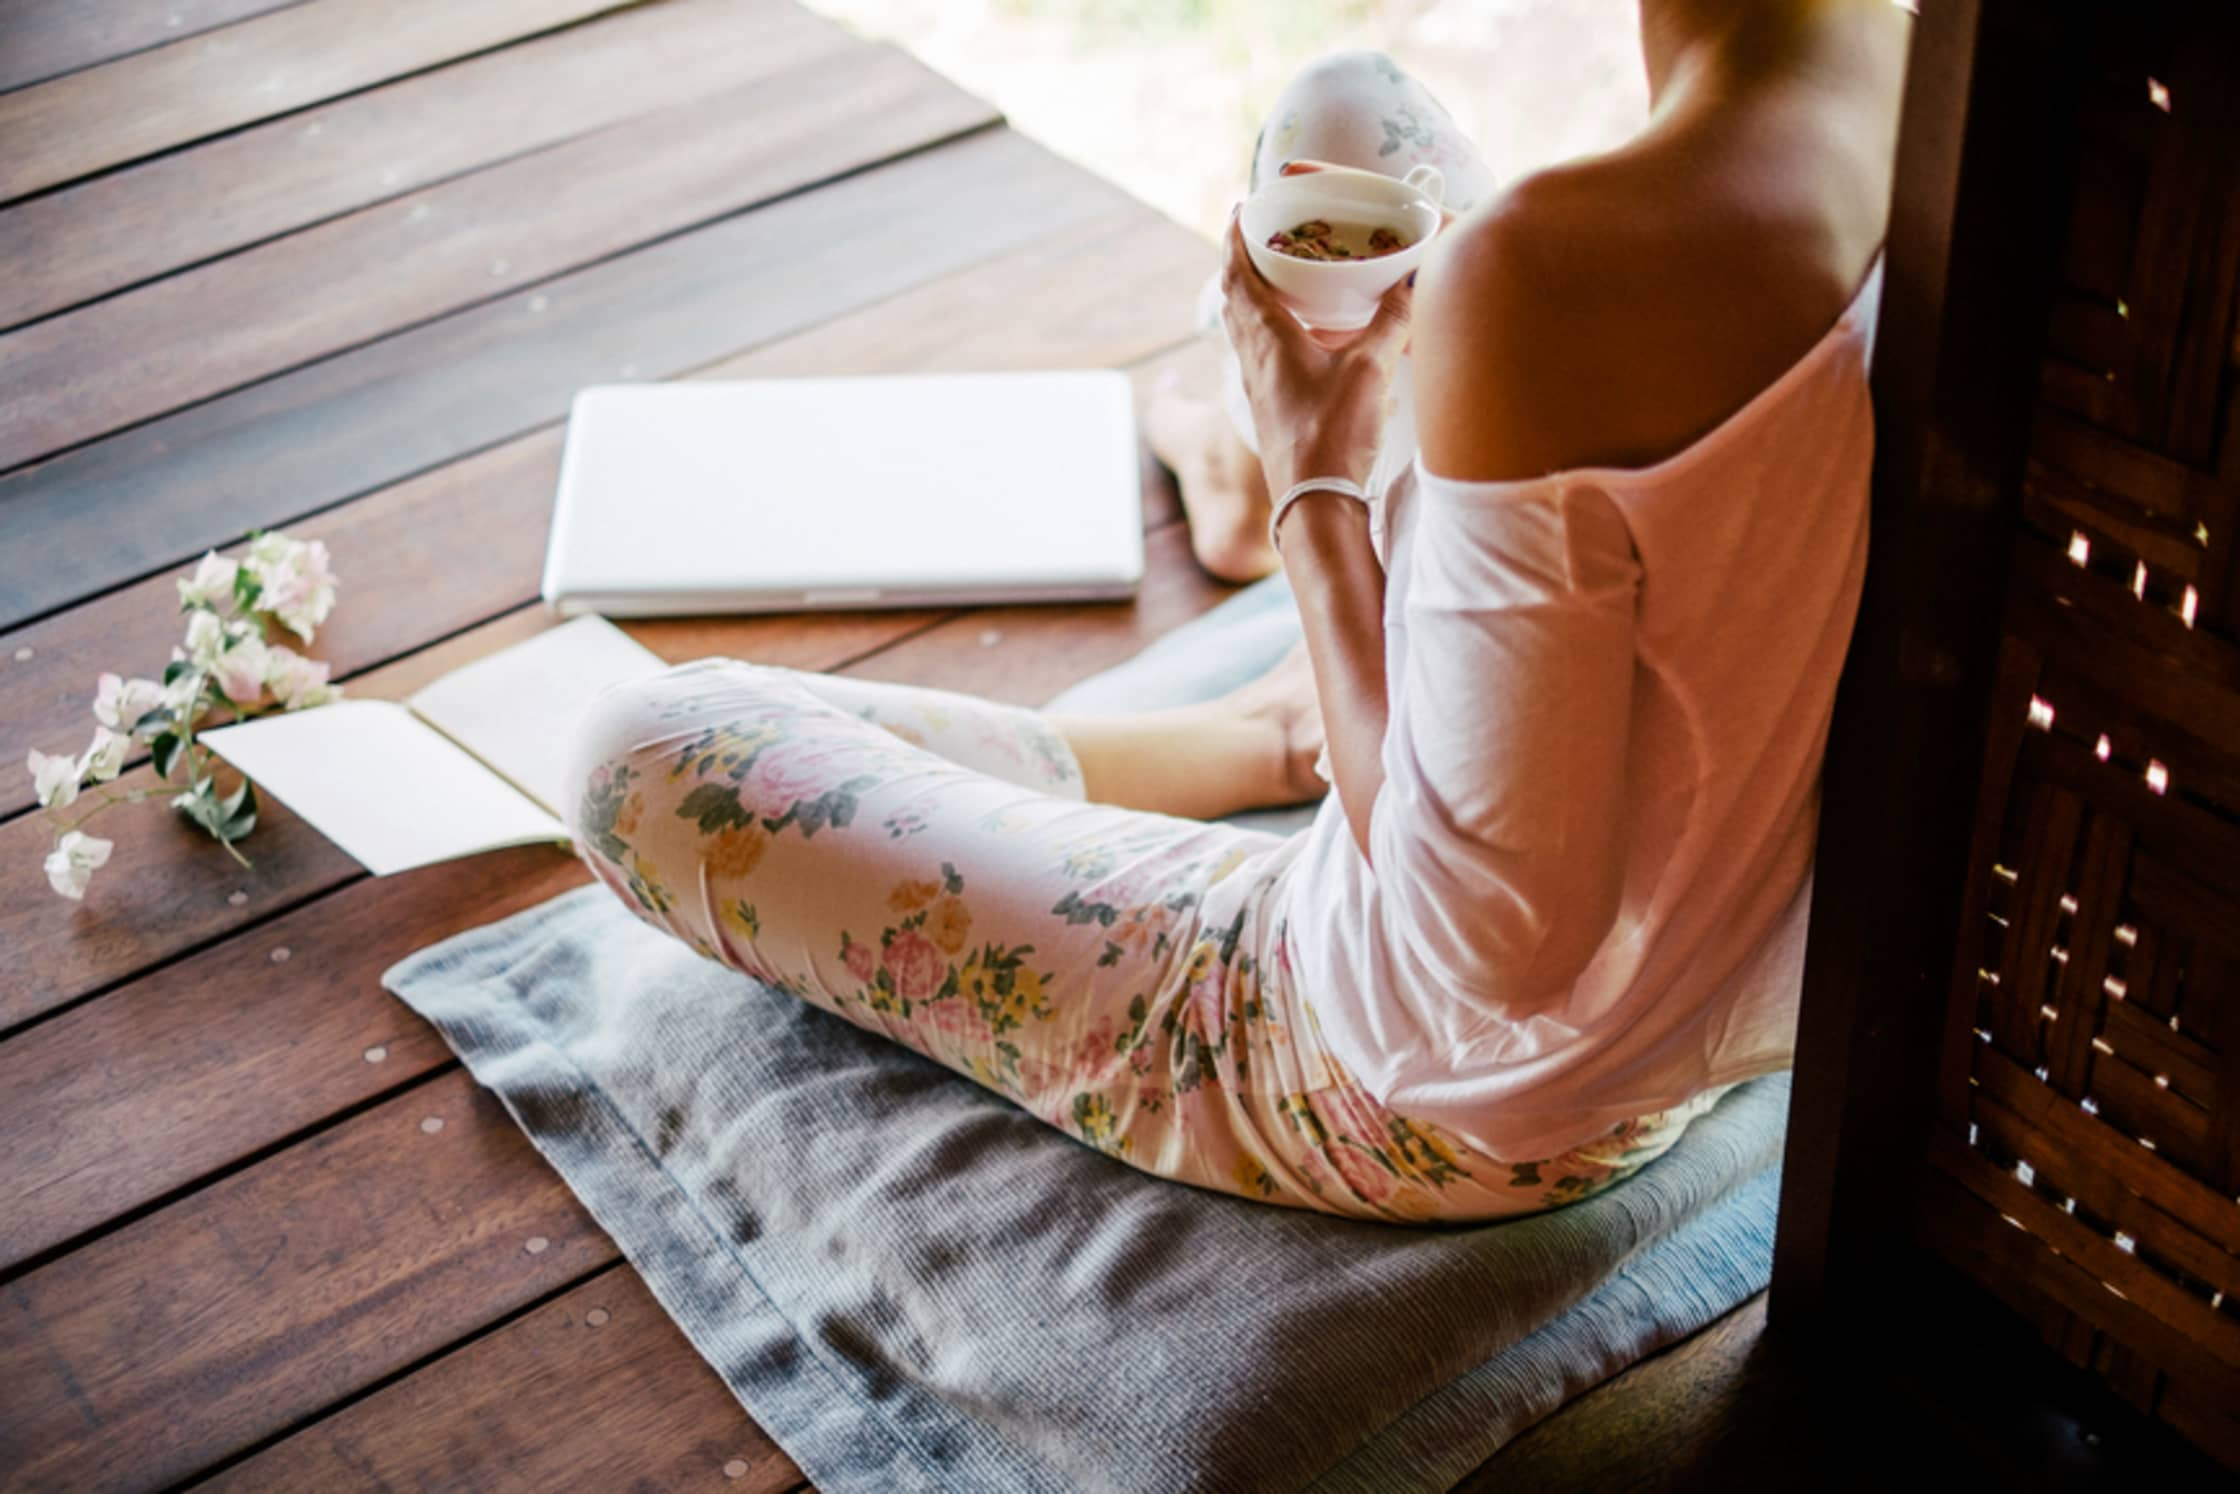 5 Ways To Get The Benefits Of Meditation (Without Having To Meditate)